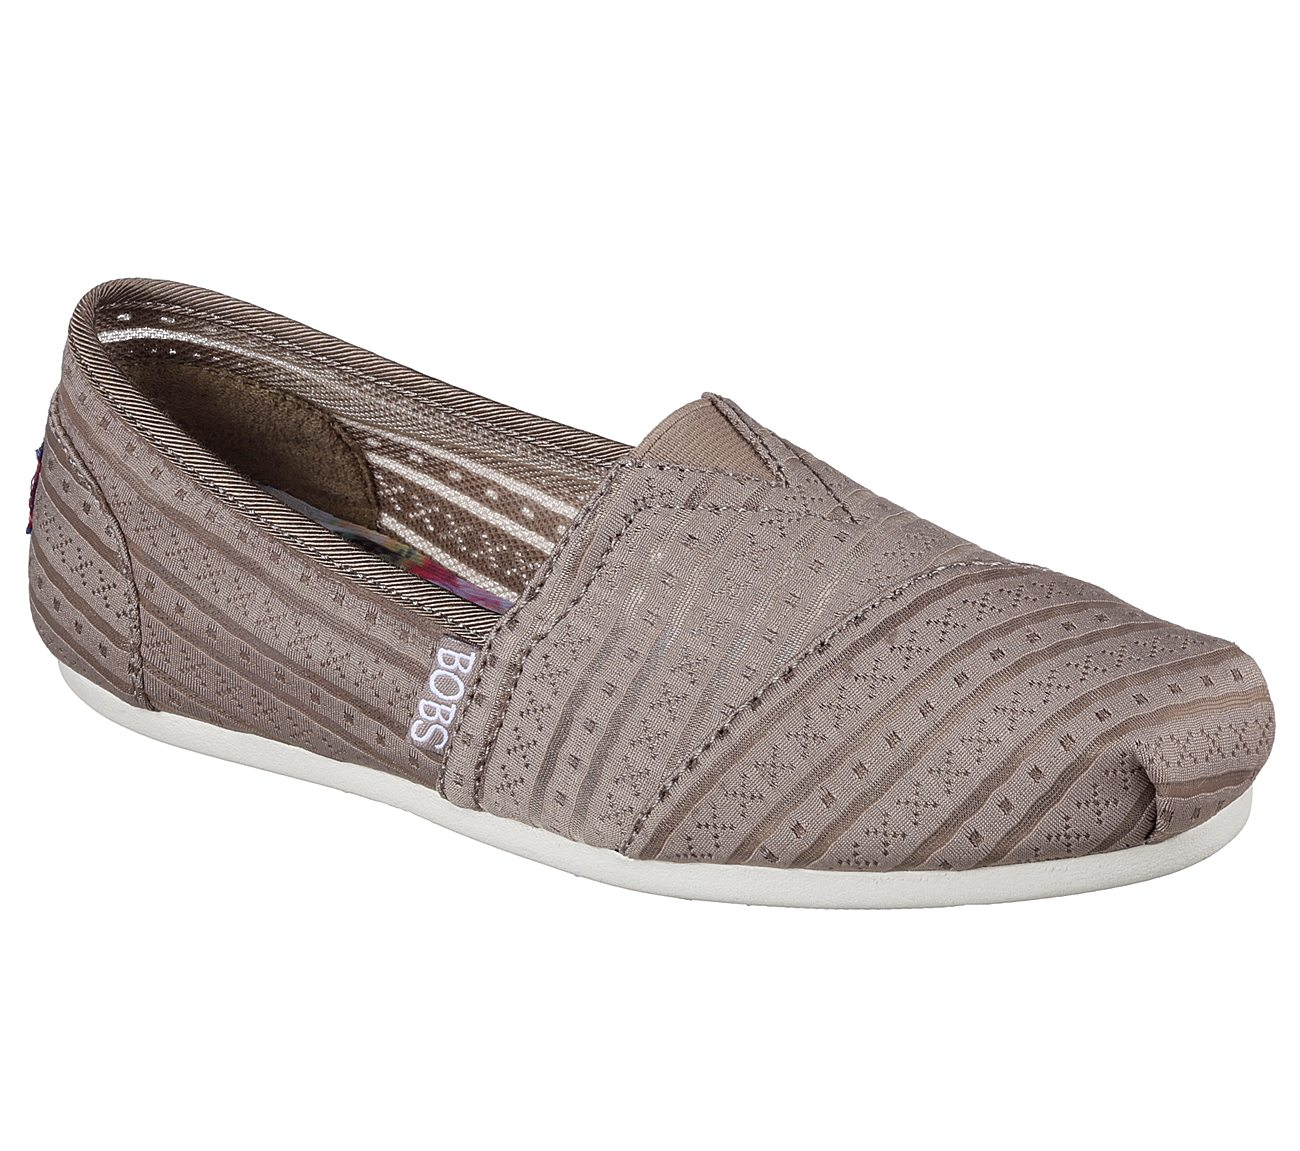 8455aa61862f Buy SKECHERS Bobs Plush - Urban Rose BOBS Shoes only  42.00